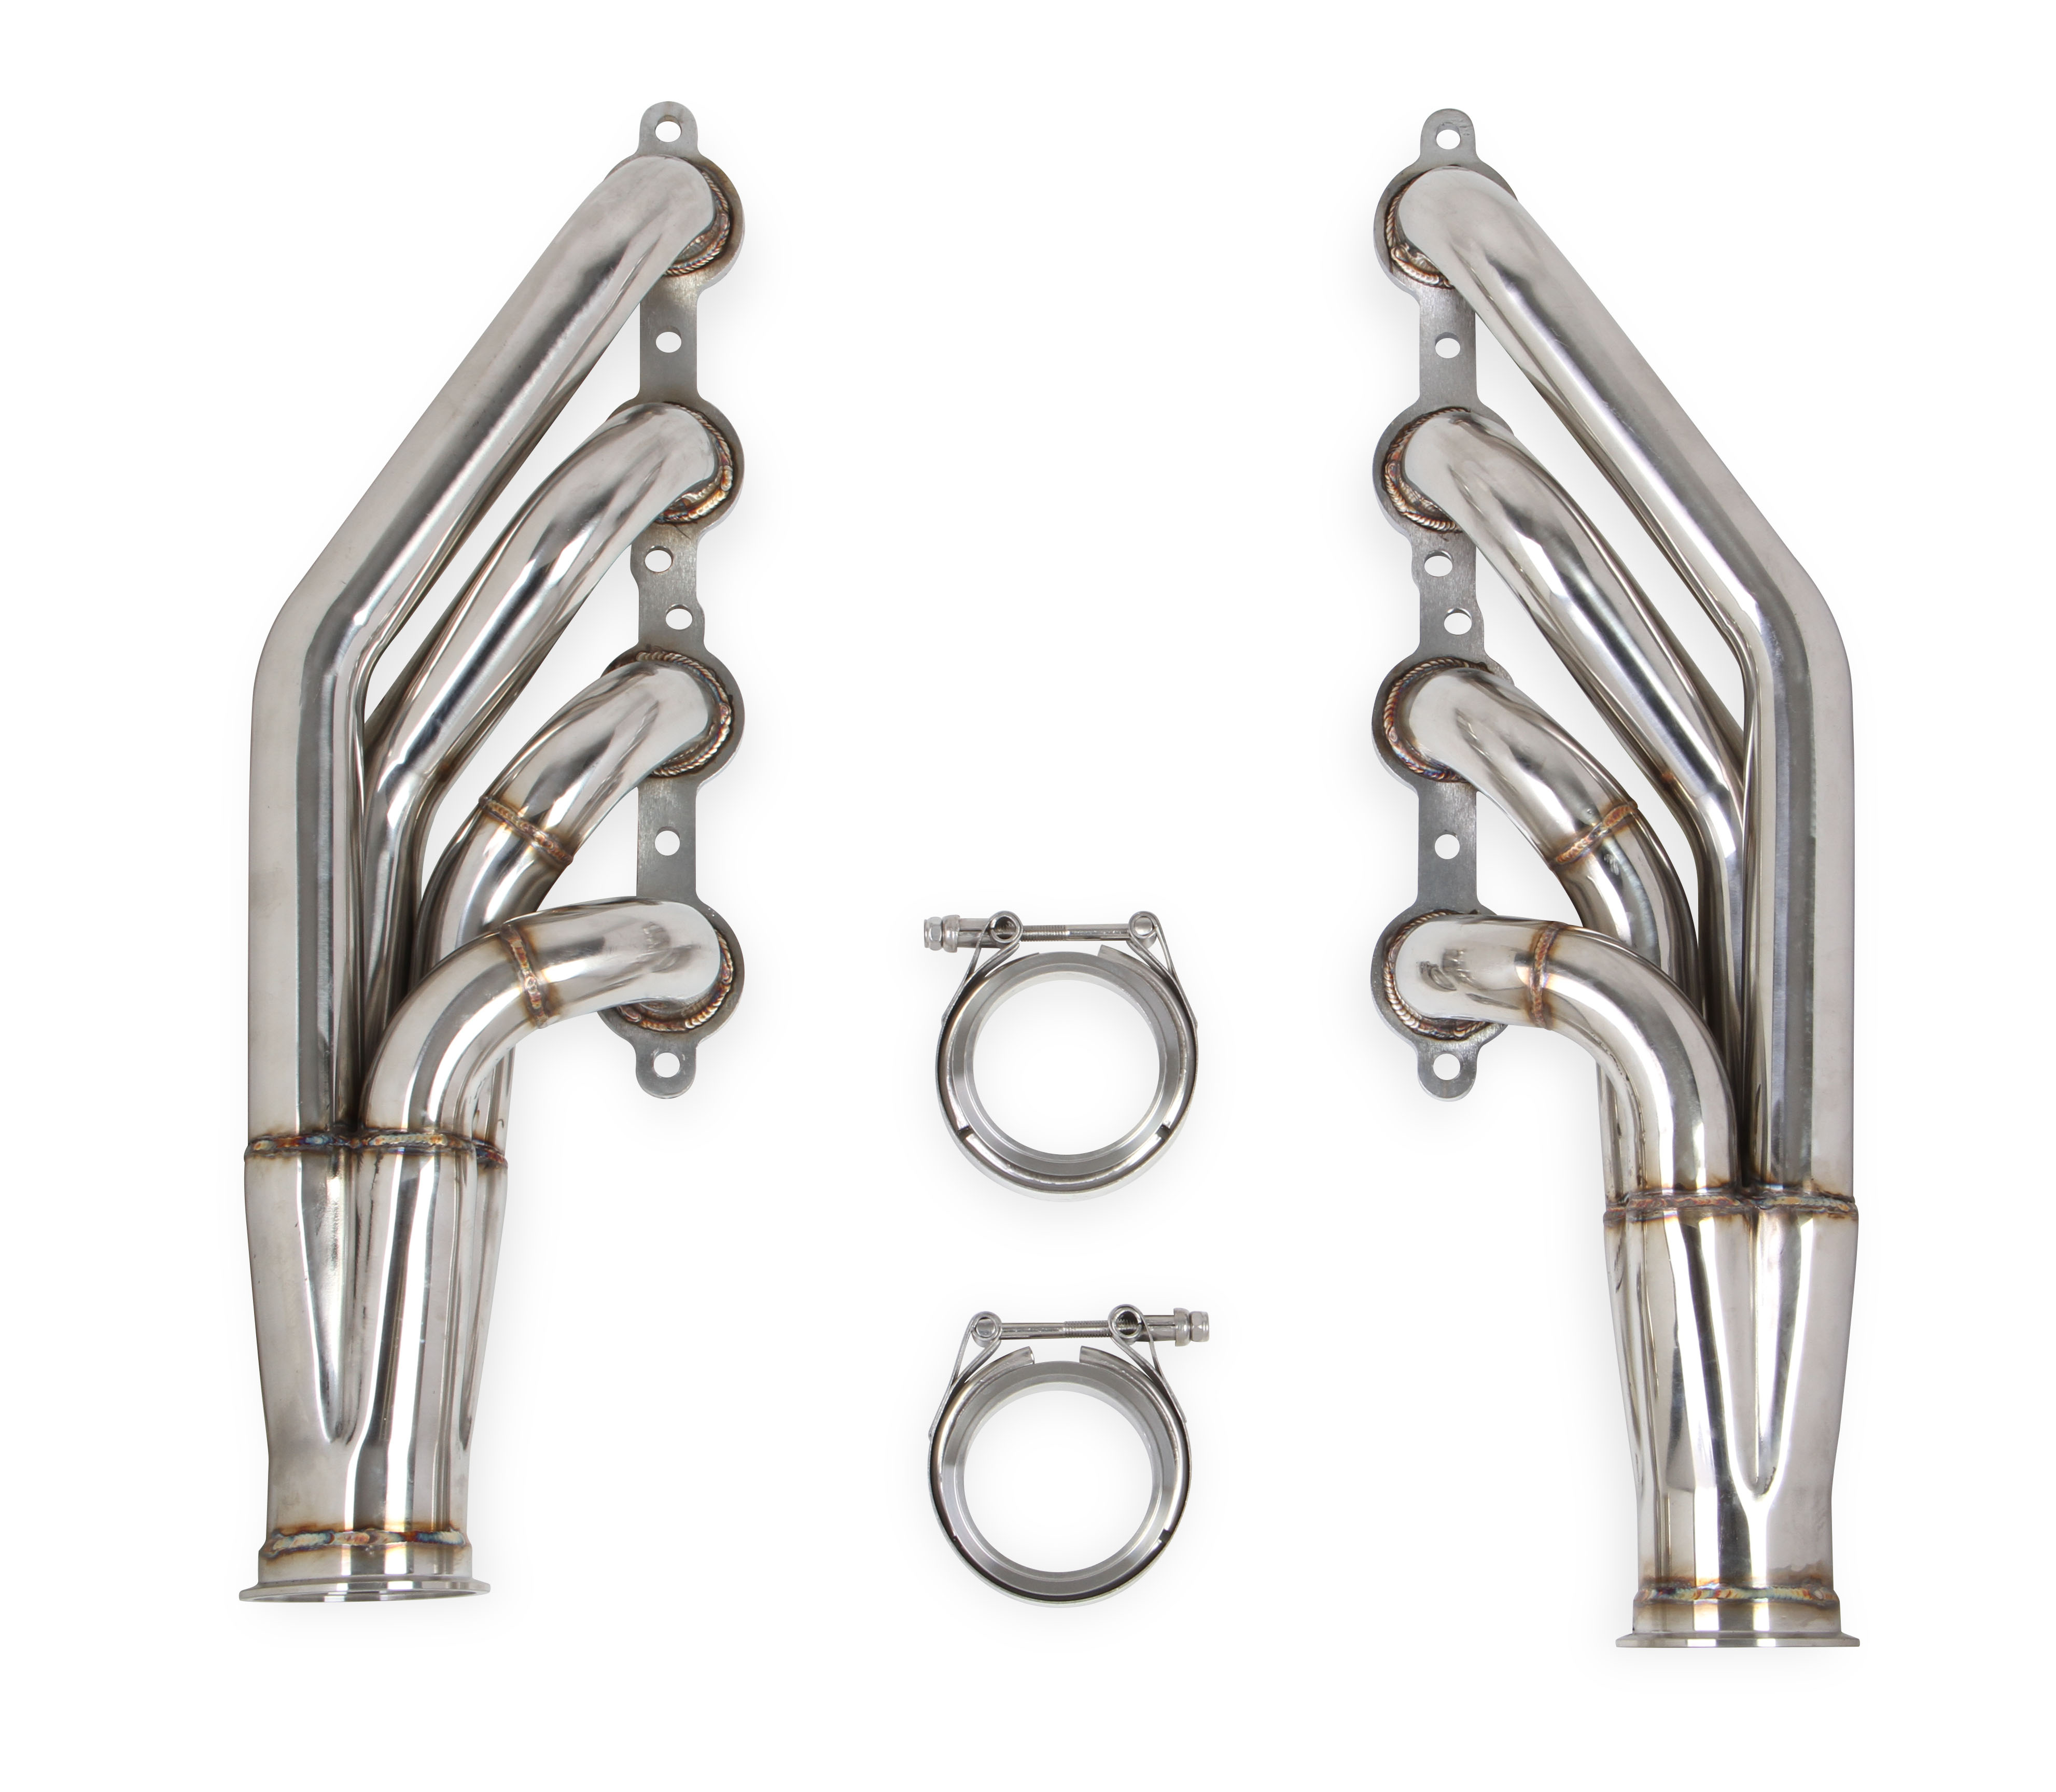 "Flowtech LS 4.8L/5.3L/6.0L V8 1 7/8"" 409 Stainless Turbo Headers - Natural Finish"